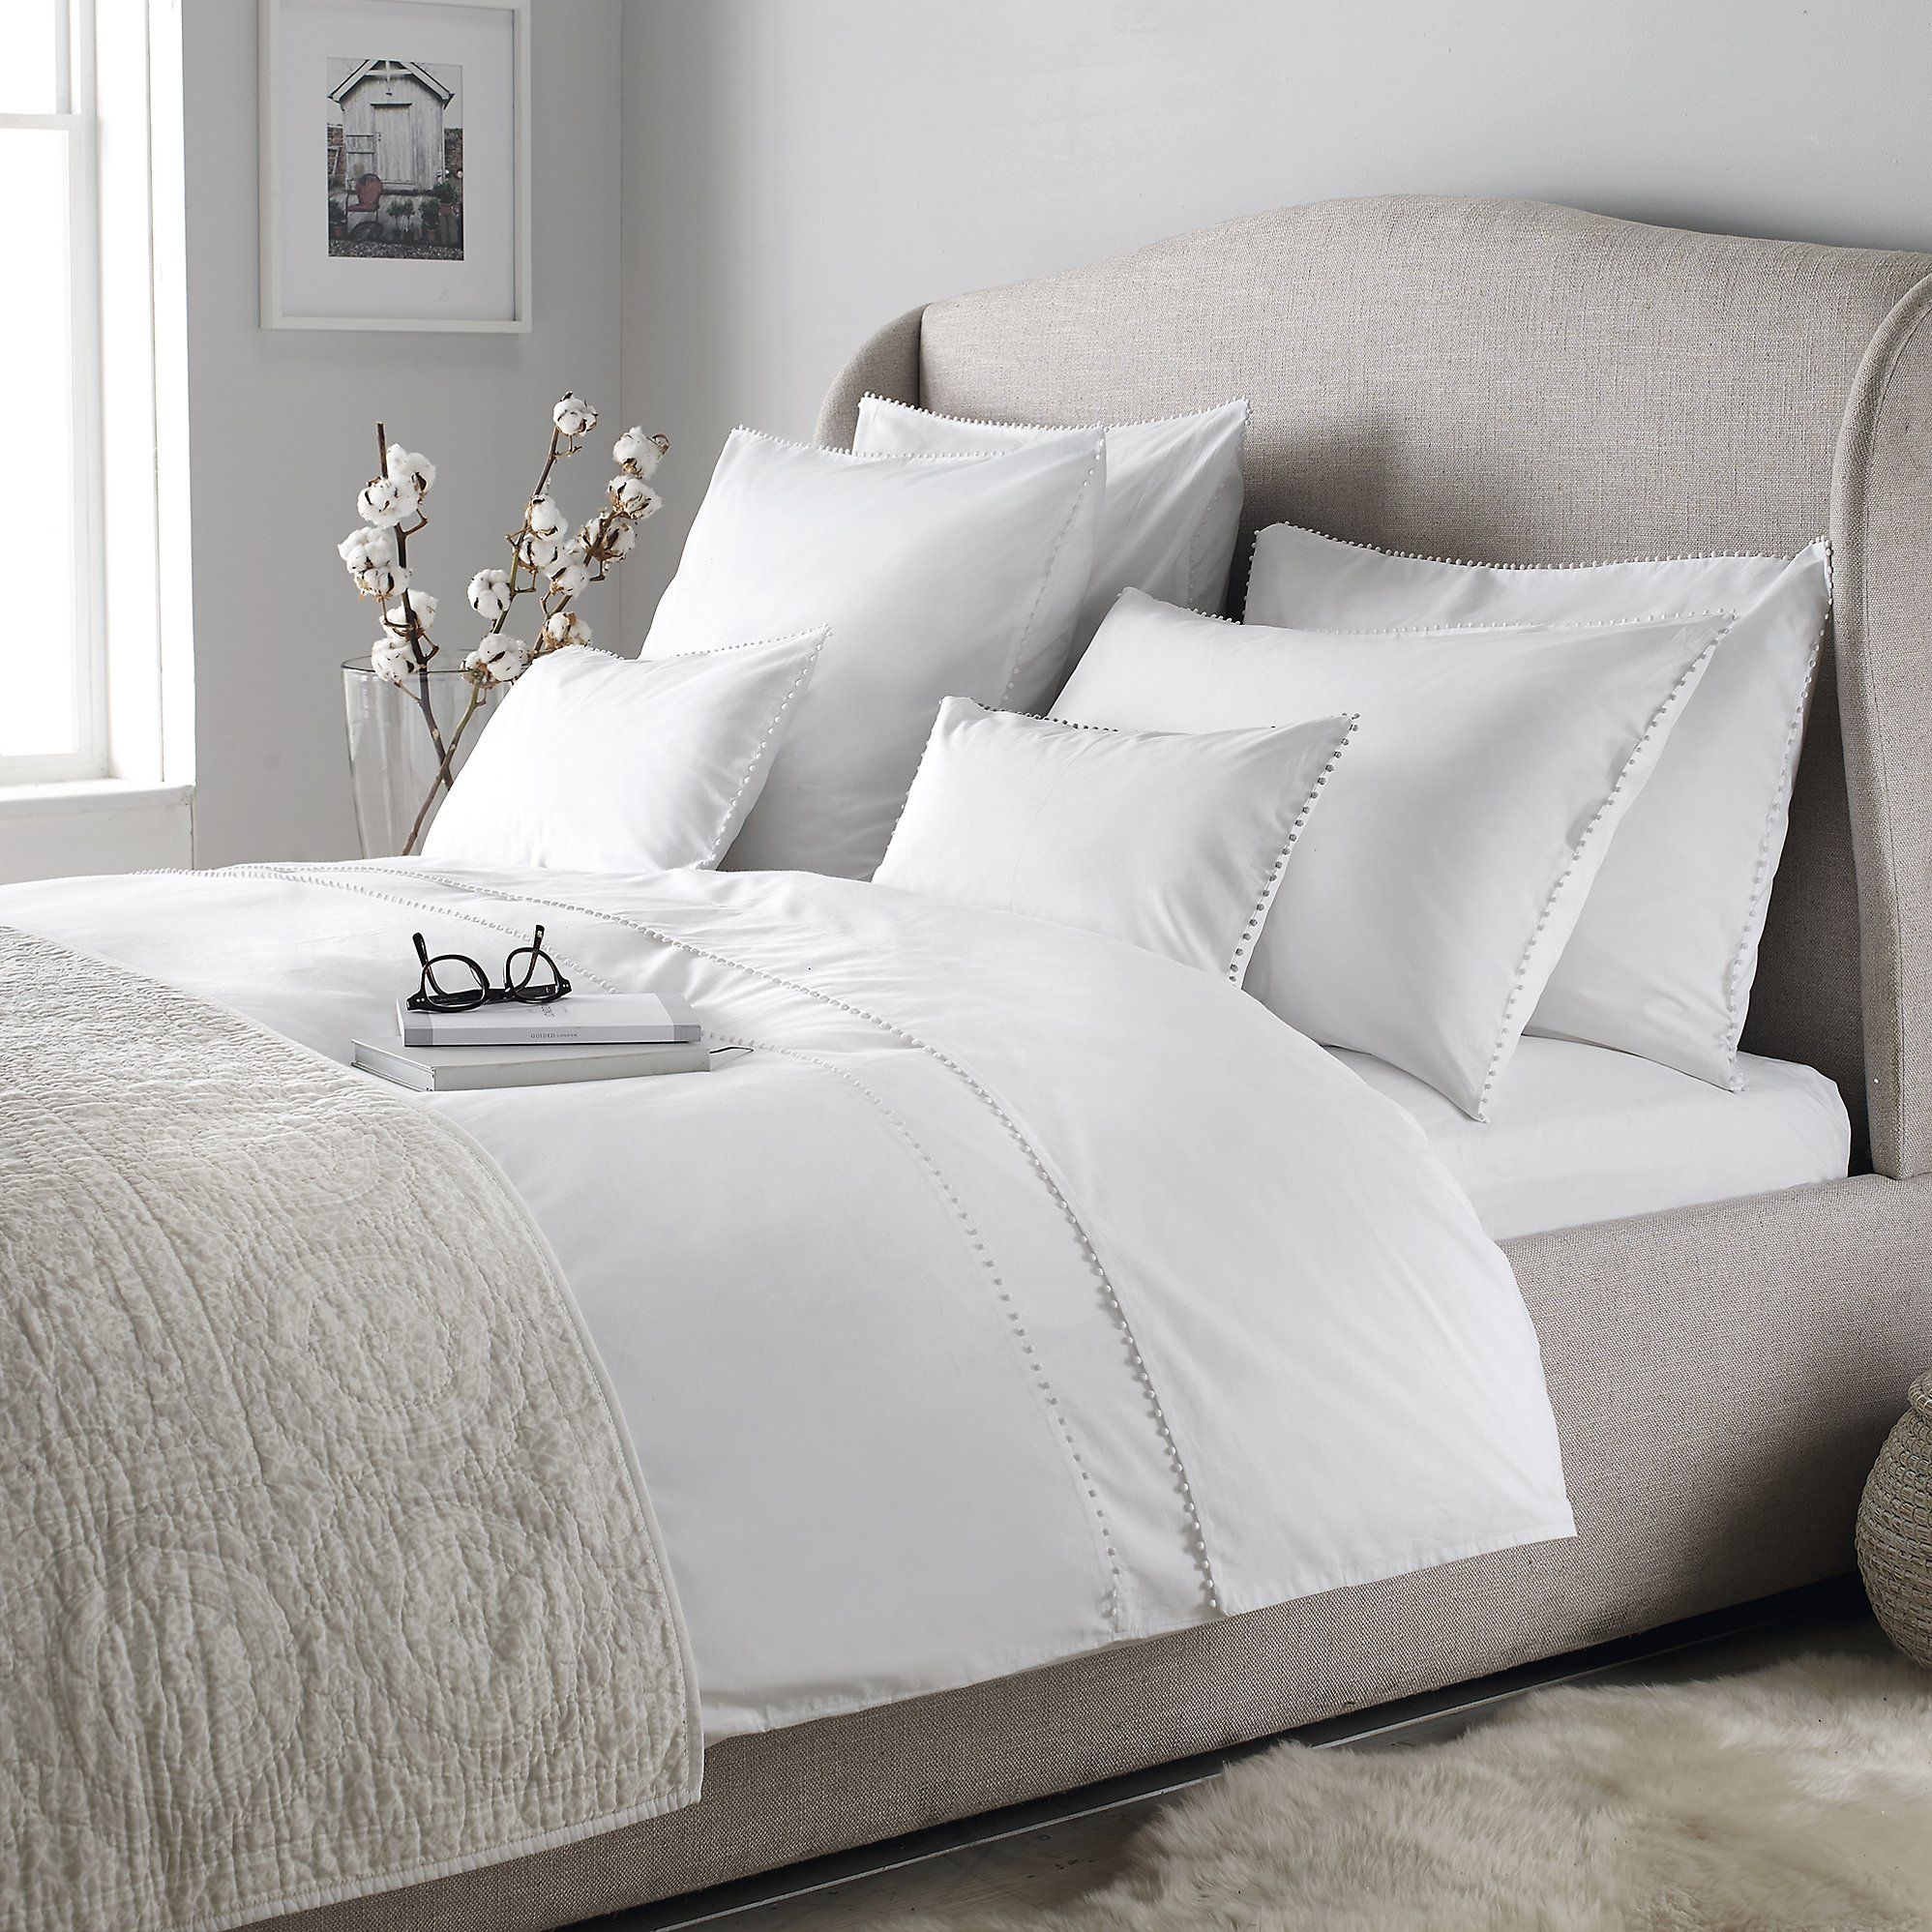 Avignon Bed Linen Collection | The White Company | Home ...